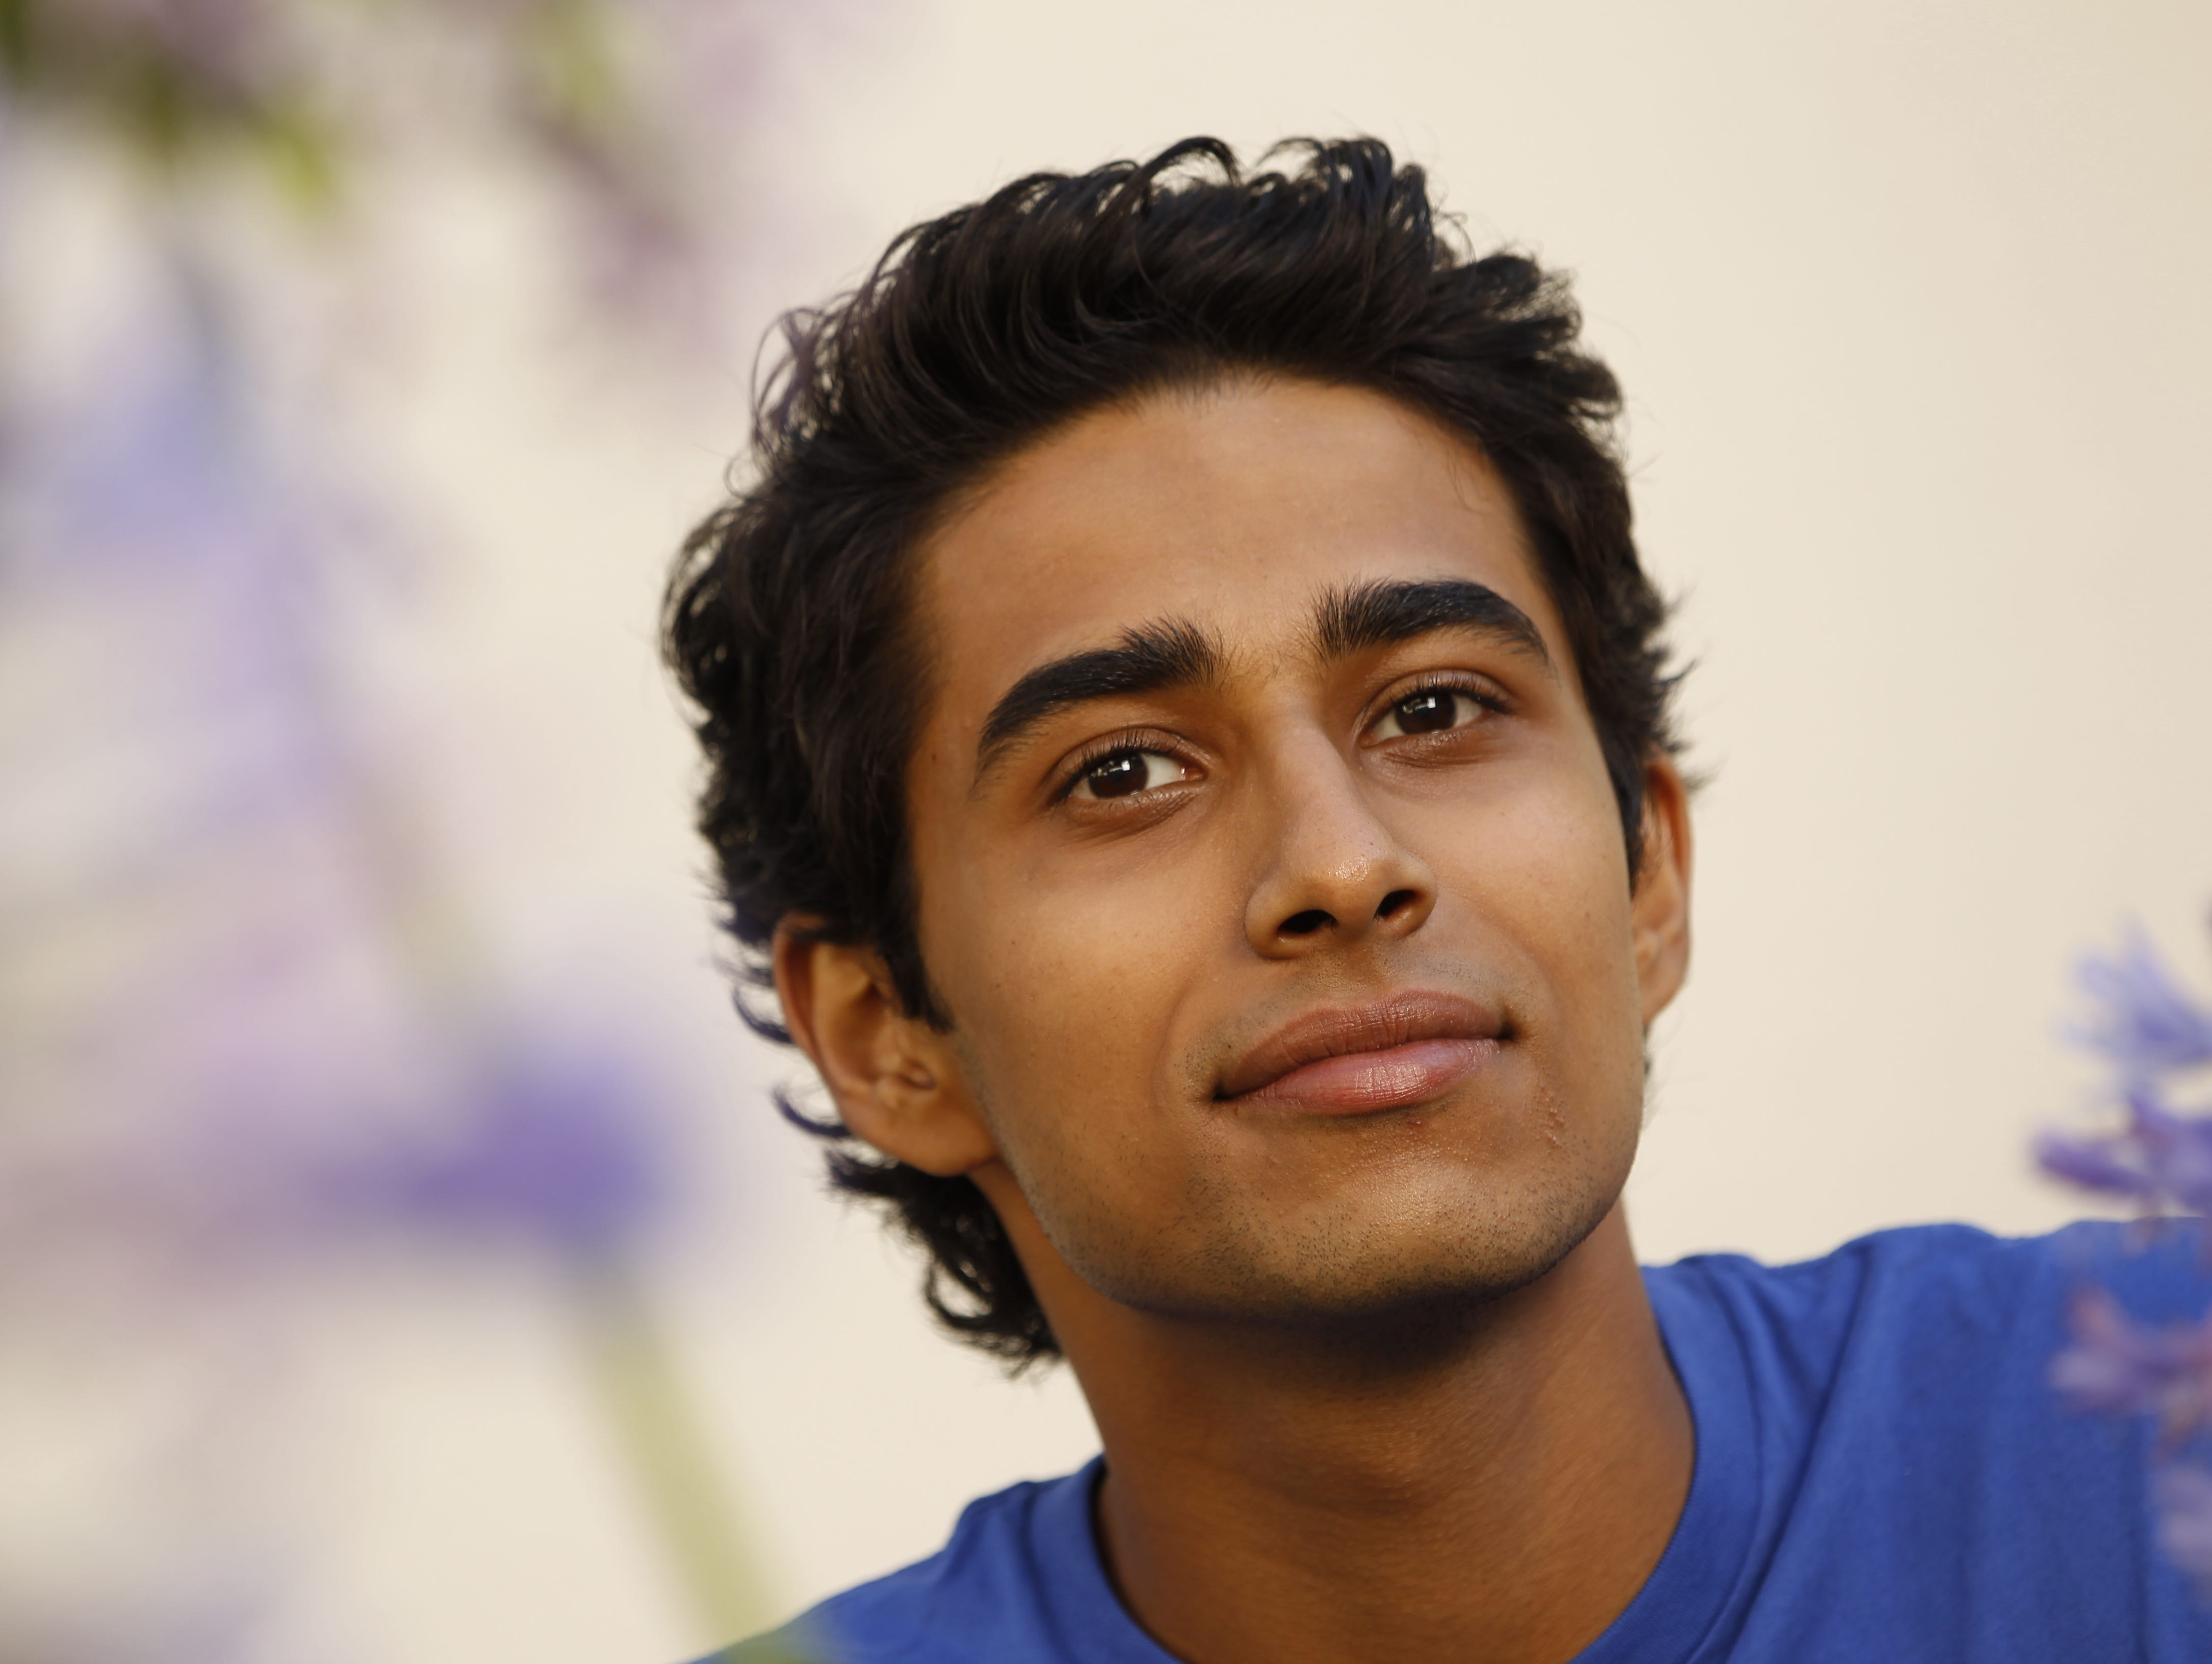 Suraj sharma breaks out in 39 life of pi 39 for Life of pi in hindi